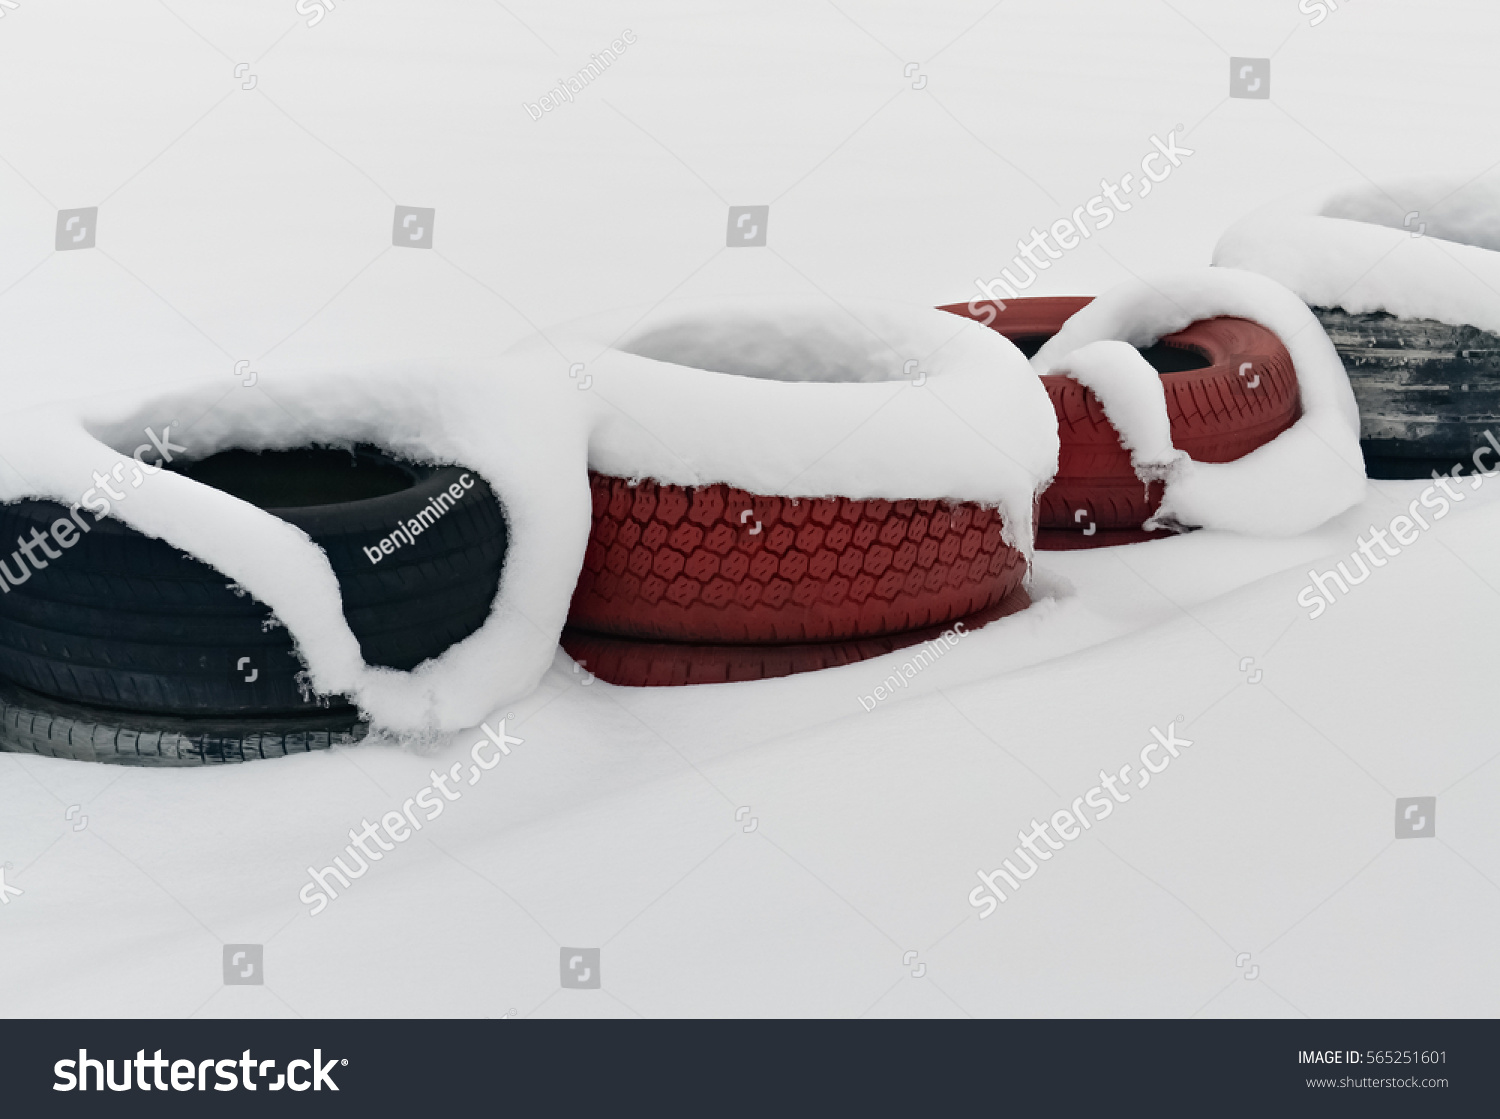 Several car tires under snow as a safeguard on the racetrack #565251601